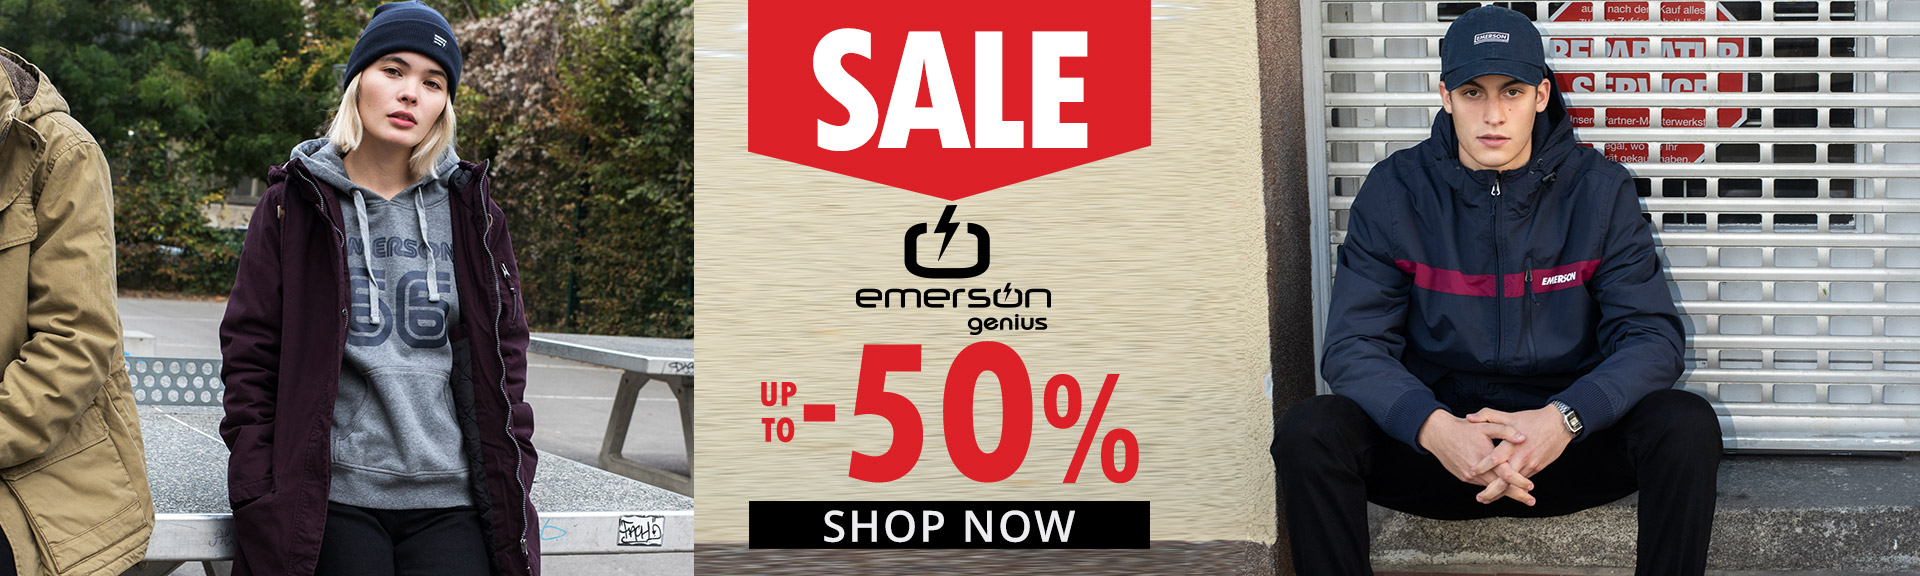 emerson up to 50%